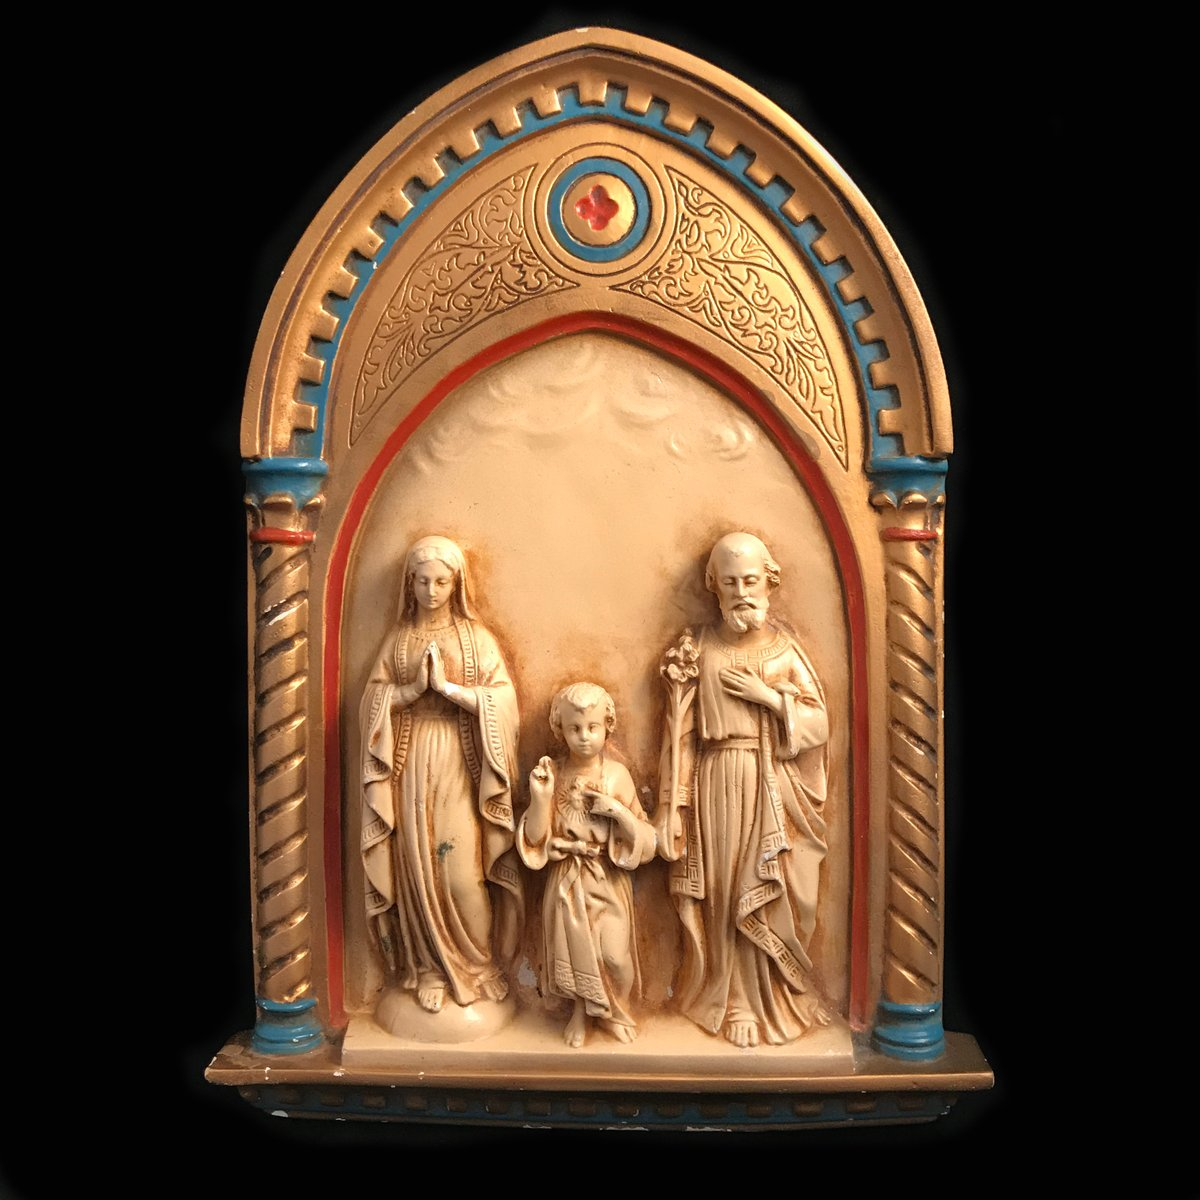 Holy Family Bas Relief, 1931  https://t.co/jdcnQDkTWi  *** Get 10% OFF when you join our newsletter ***  #thevintagecatholic #Catholictwitter  #holyfamily #Saintjoseph #Madonna #VirginMary #SacredHeartofJesus https://t.co/IiJEI4Wjev